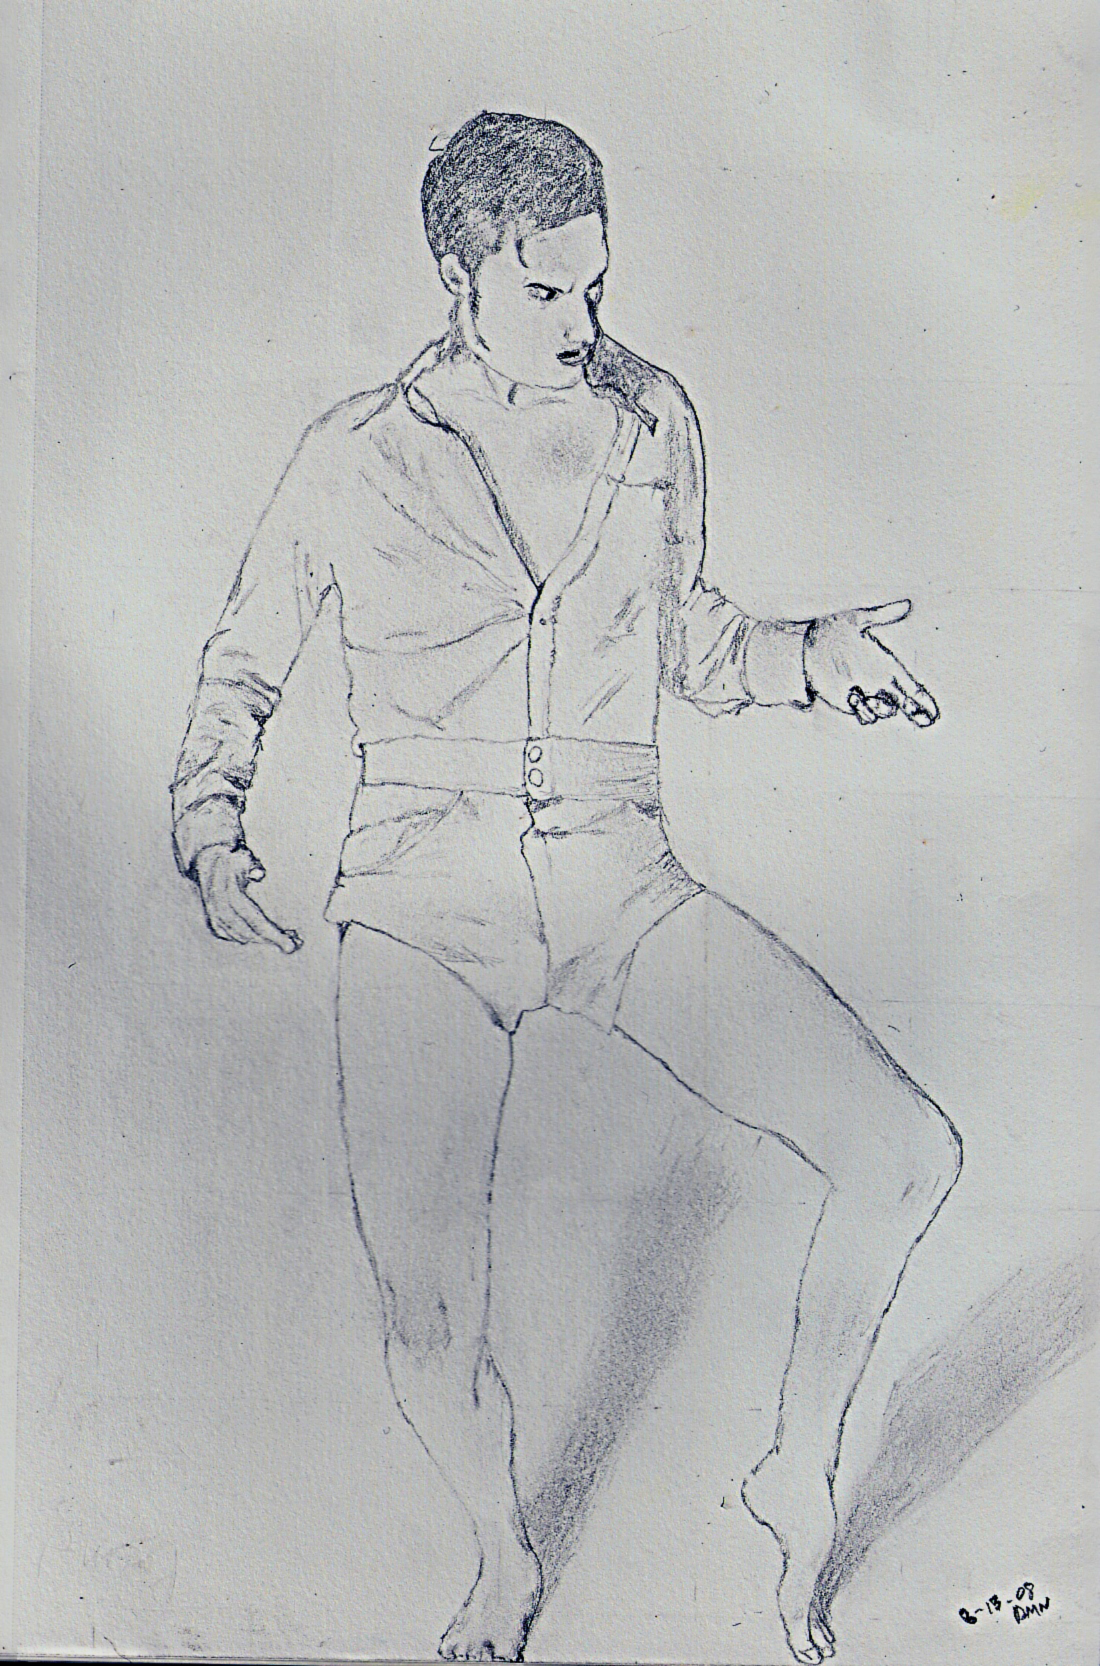 2008 08 13 Sketch Self Portrait.jpg